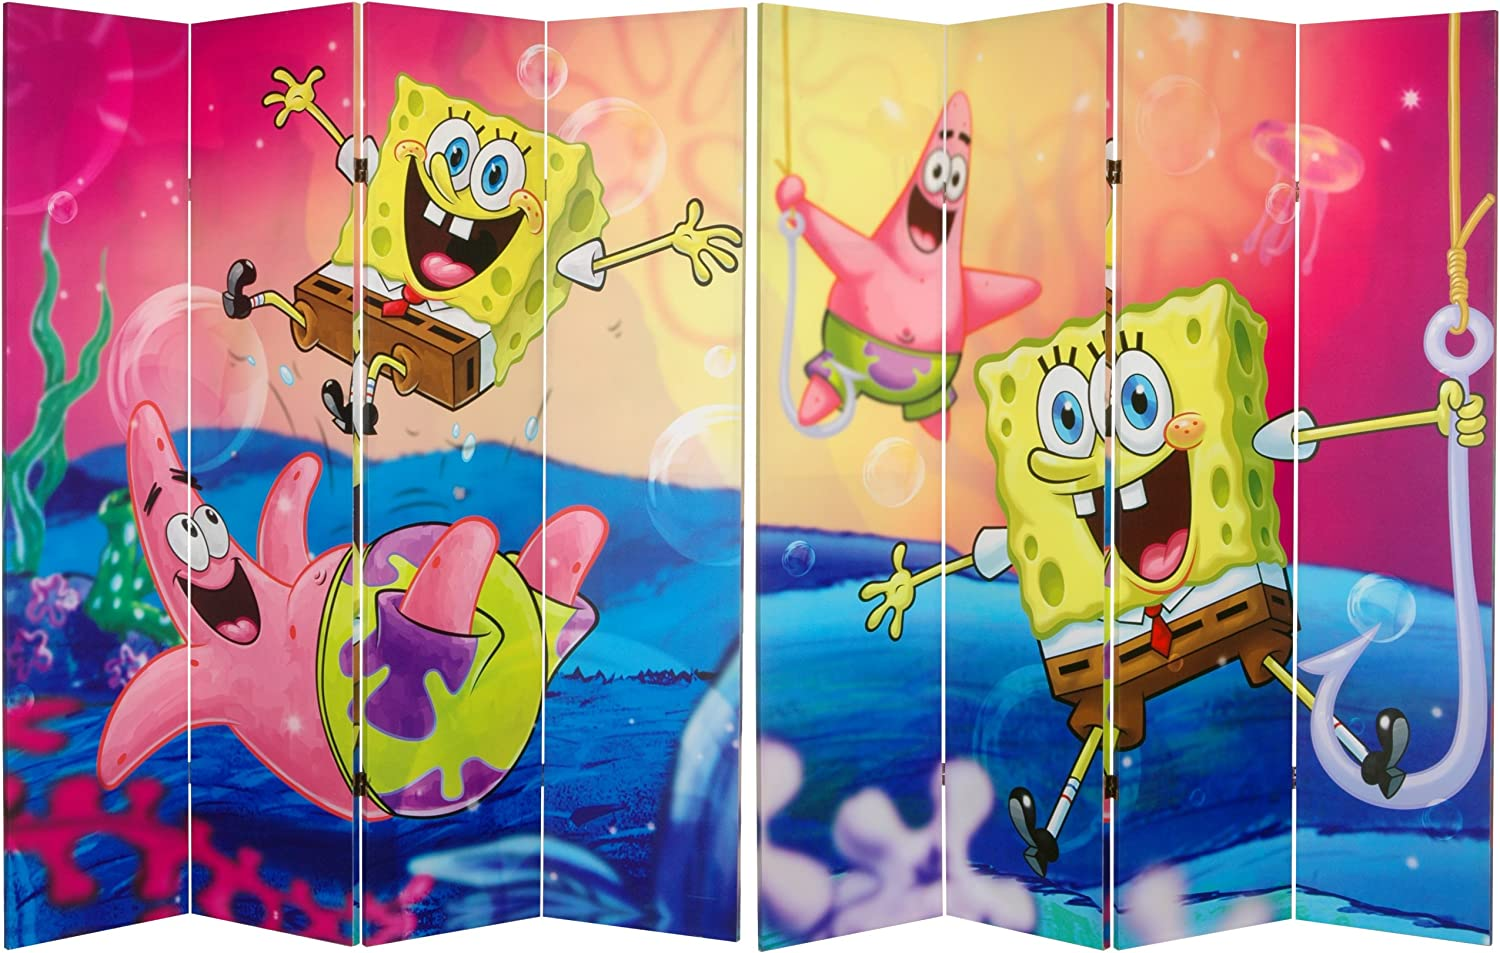 Oriental Furniture 6-Feet Tall Double Sided SpongeBob and Patrick Canvas Room Divider